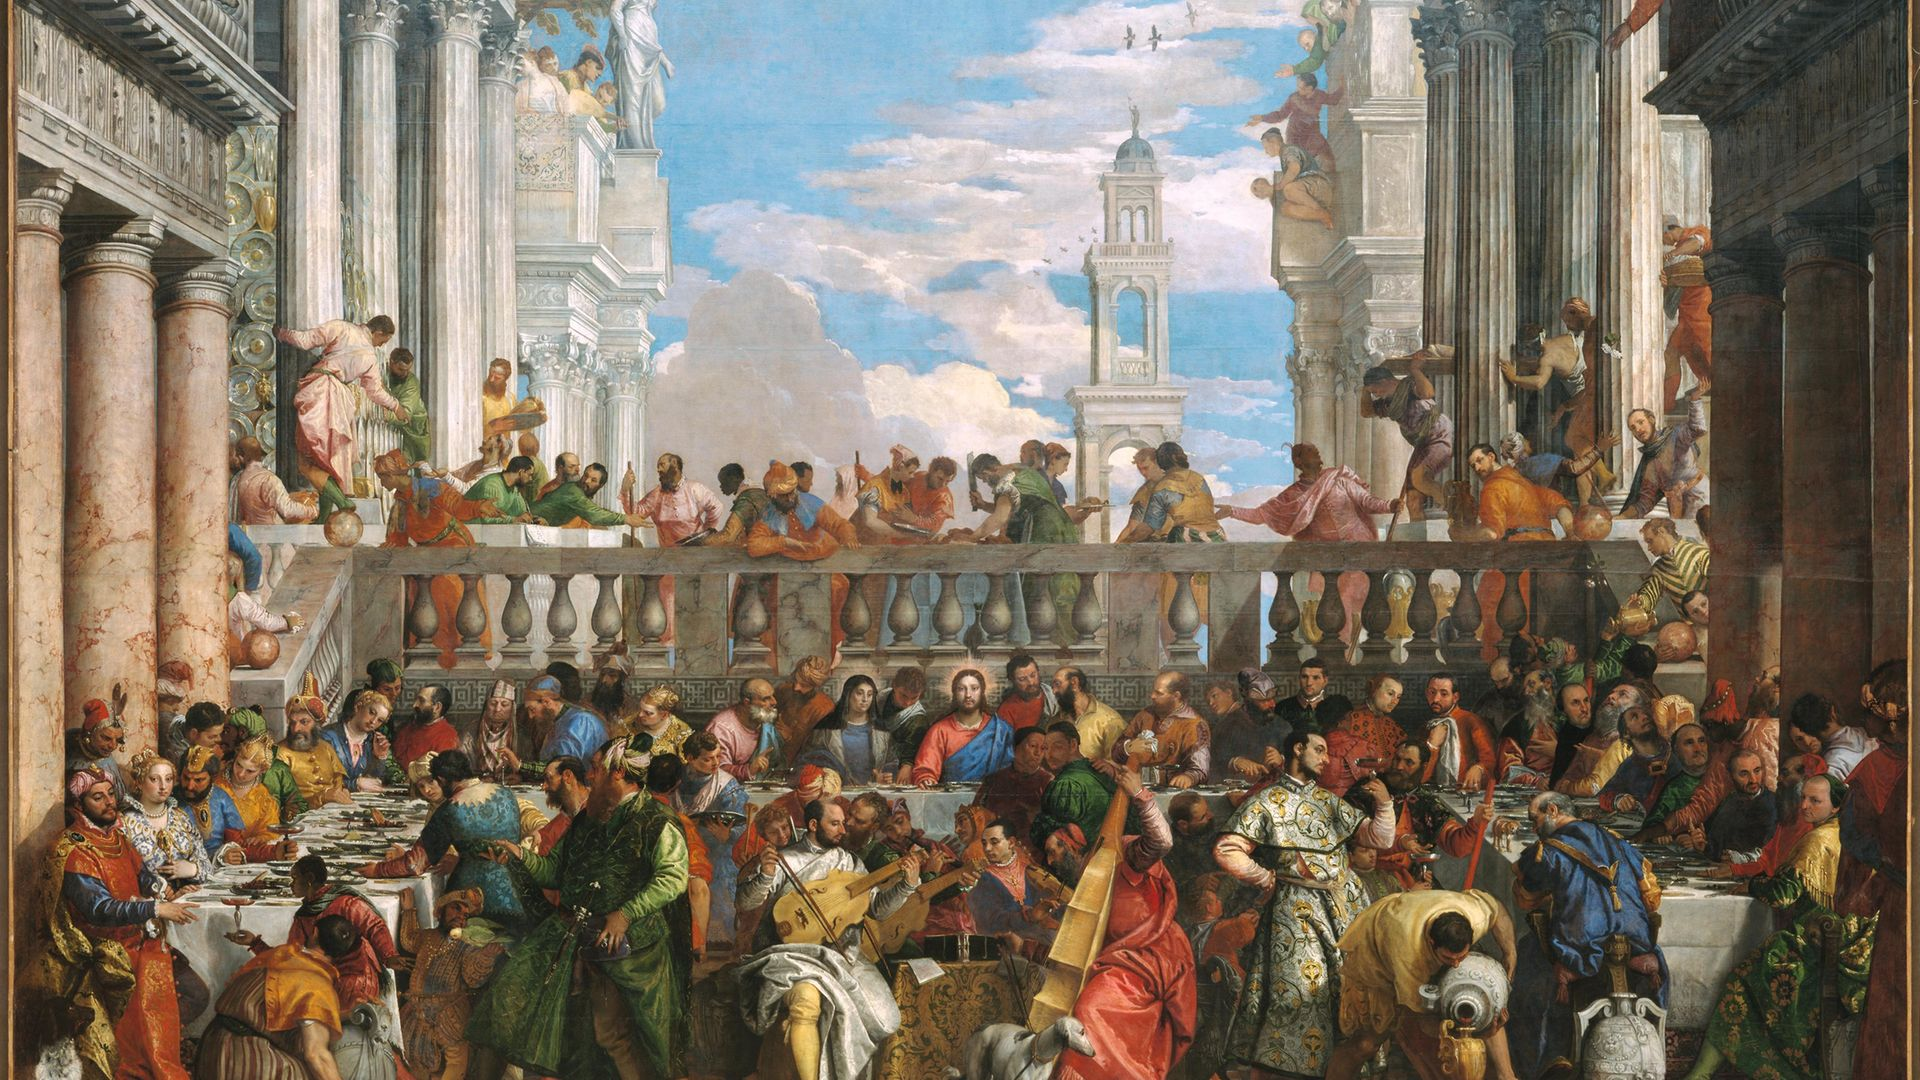 The Wedding Feat at Cana, by Paolo Veronese, 1563 - Credit: DeAgostini/Diomedia